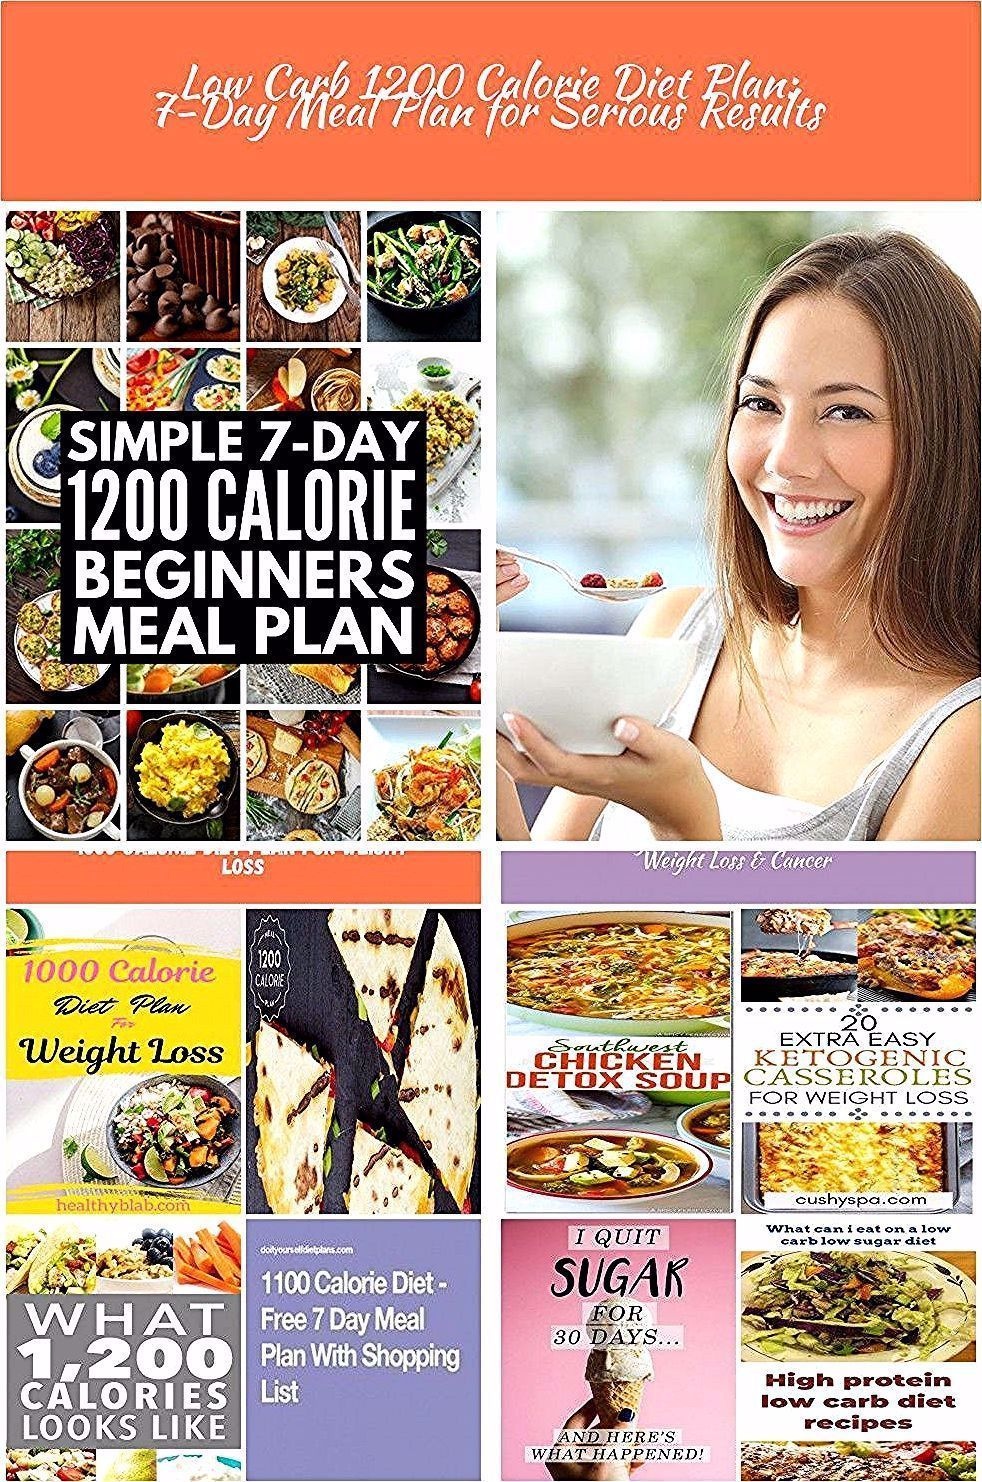 Low Carb 1200 Calorie Diet Plan 7Day Meal Plan for Serious Results 1200 calori